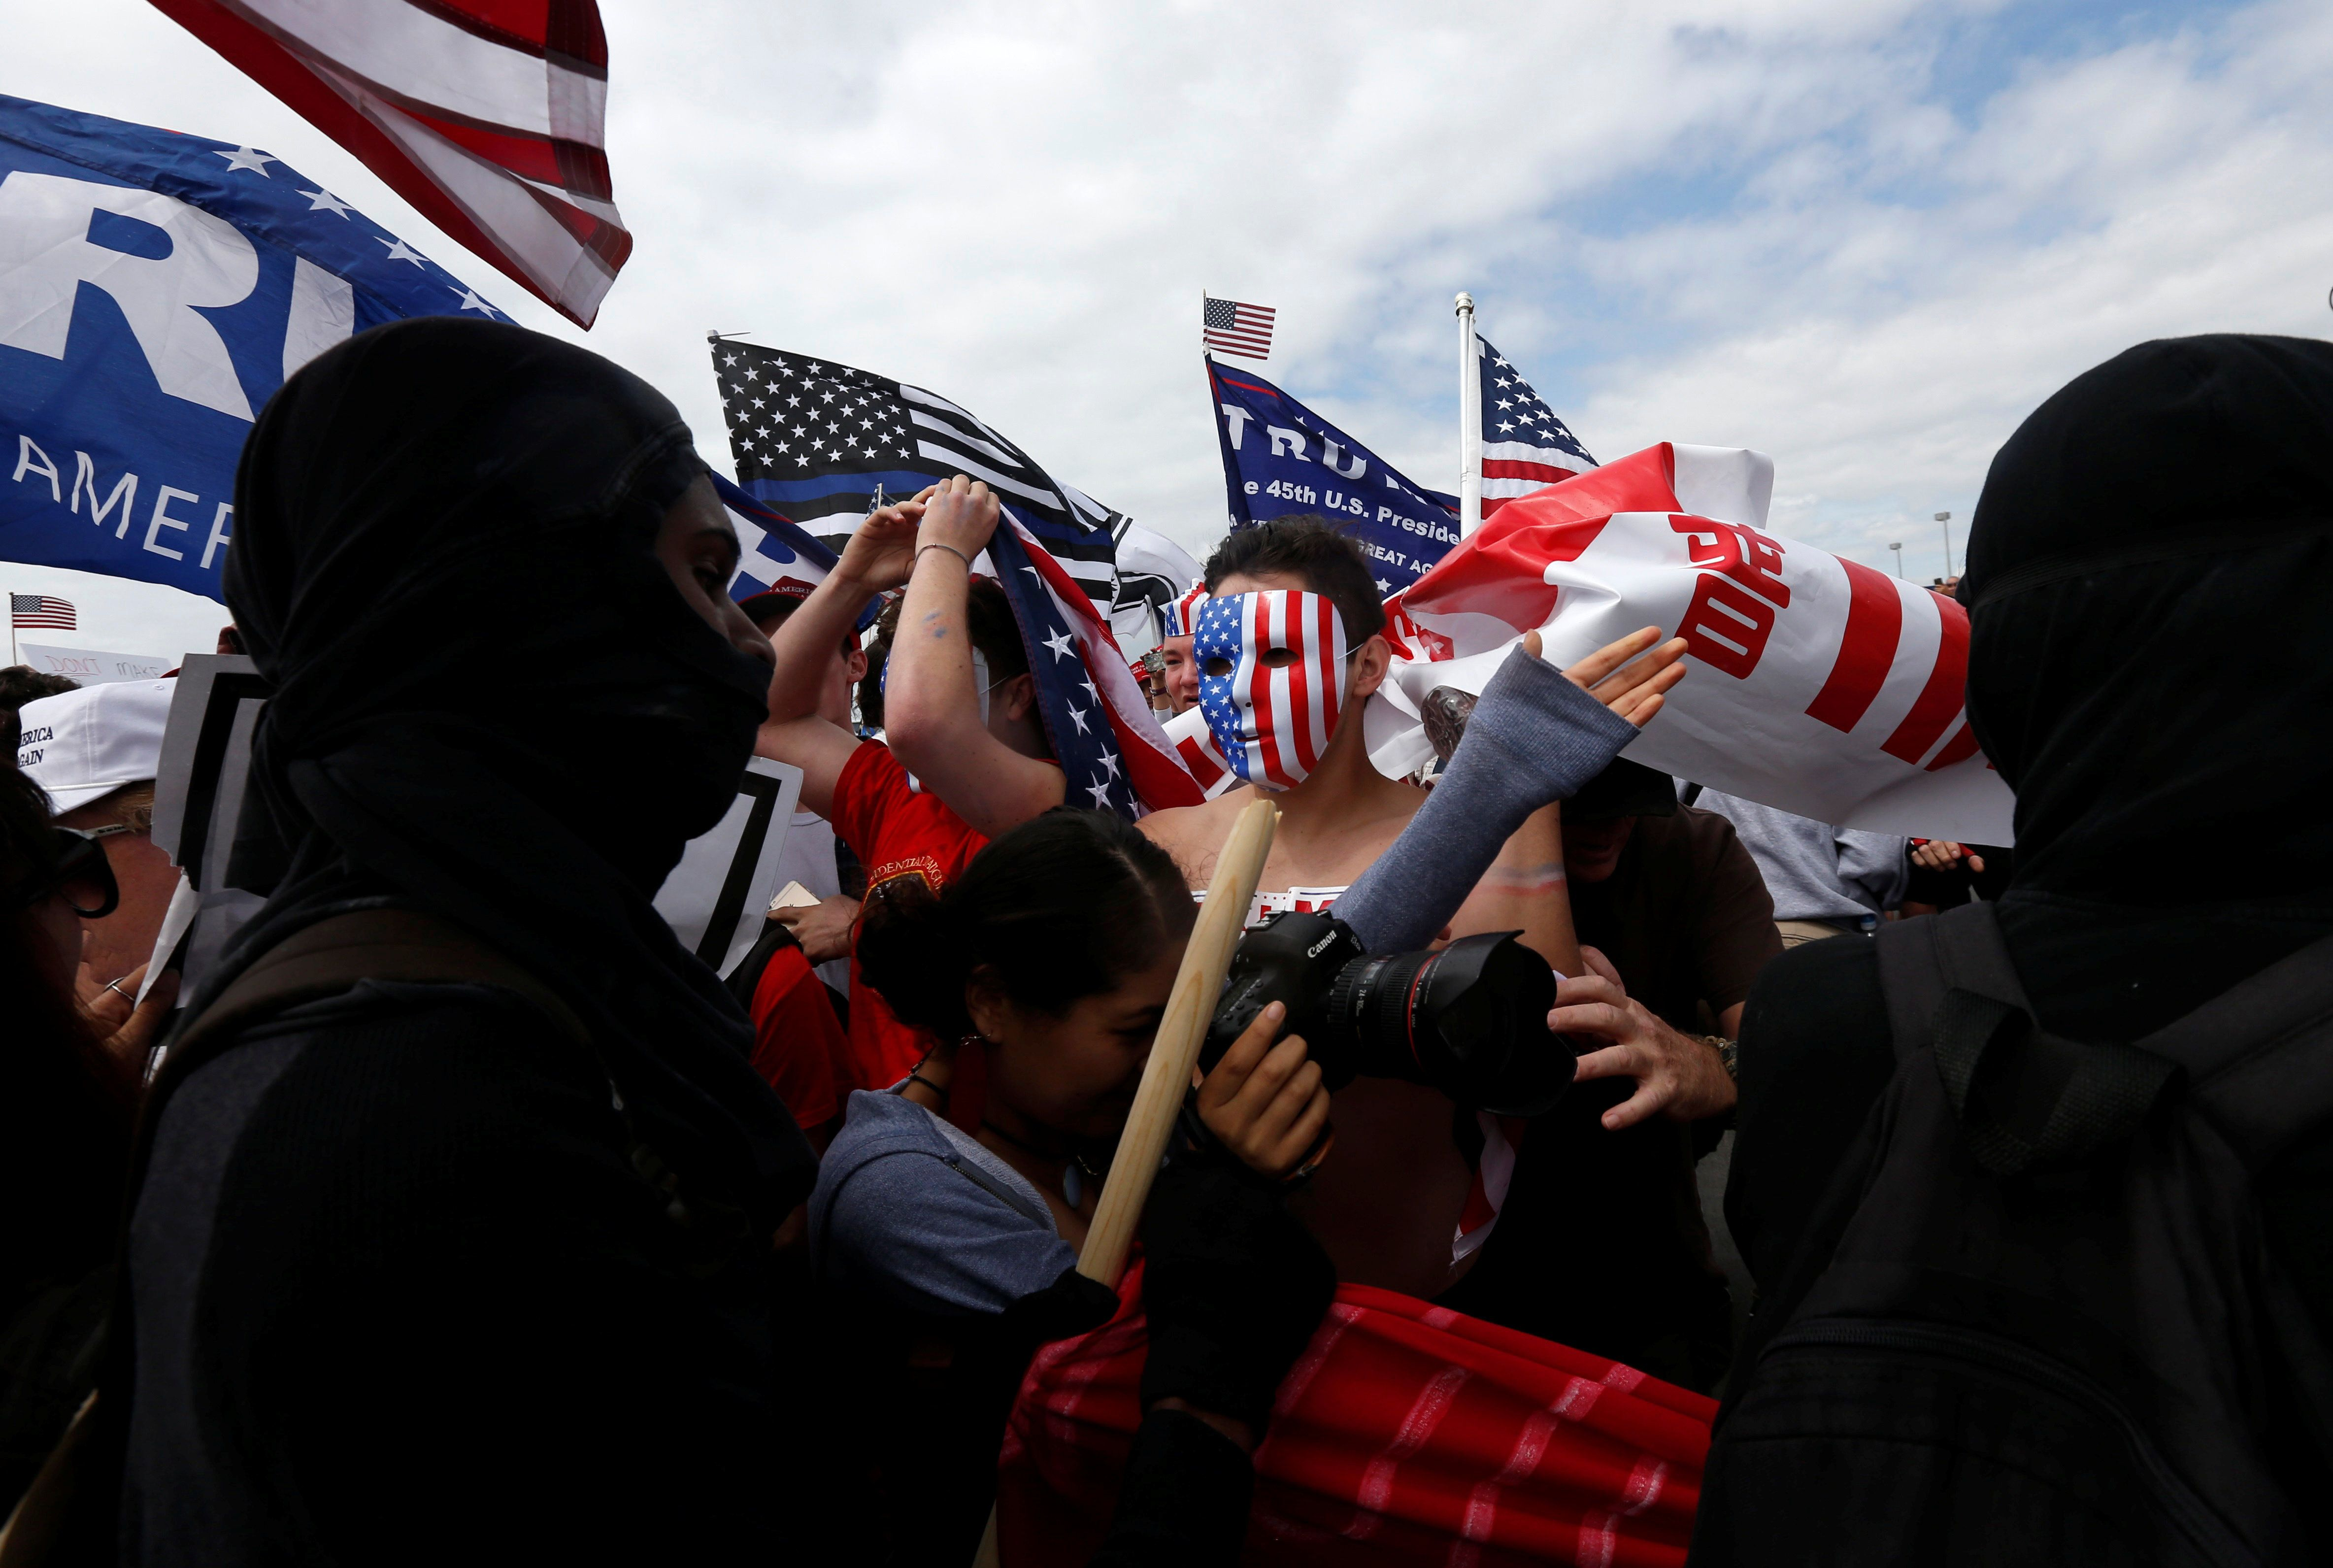 Pro-Trump rally participants mix with Anti-Trump protester as the two sides clash during a Pro-Trump rally in Huntington Beach, California, U.S., March 25, 2017.    REUTERS/Patrick T. Fallon